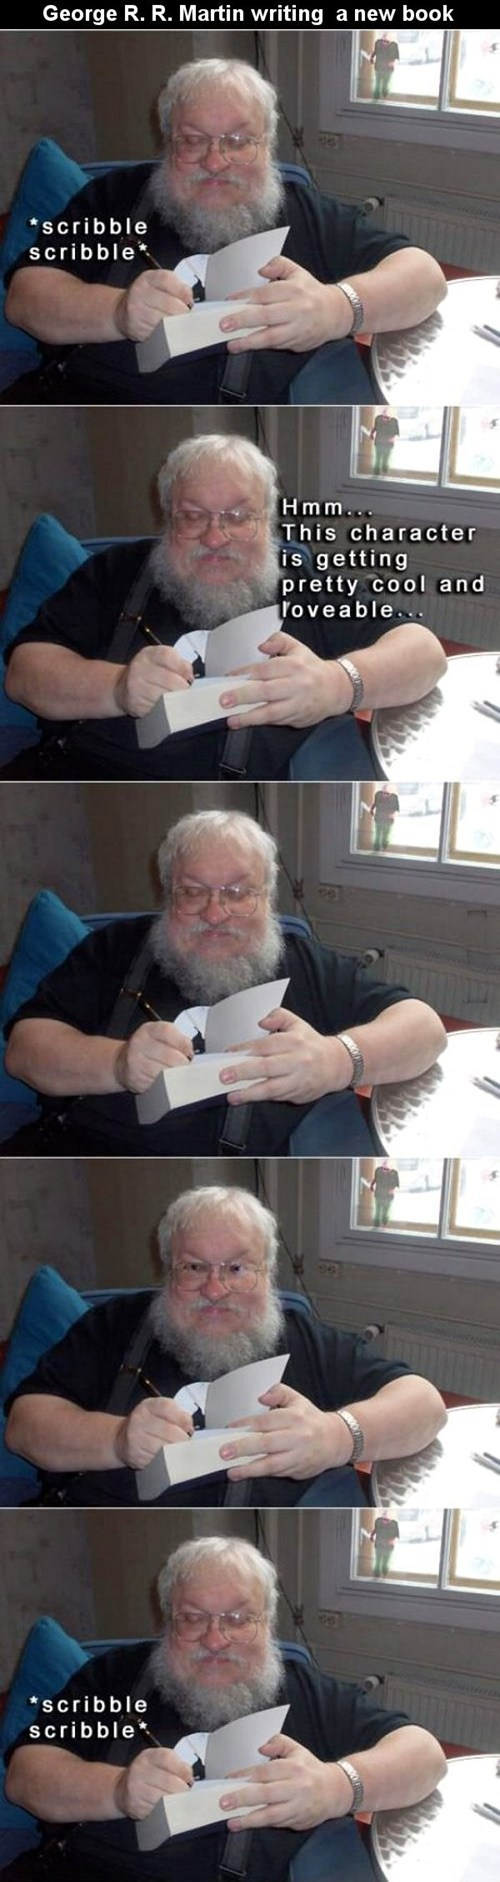 writers Game of Thrones george r r martin - 7572230656